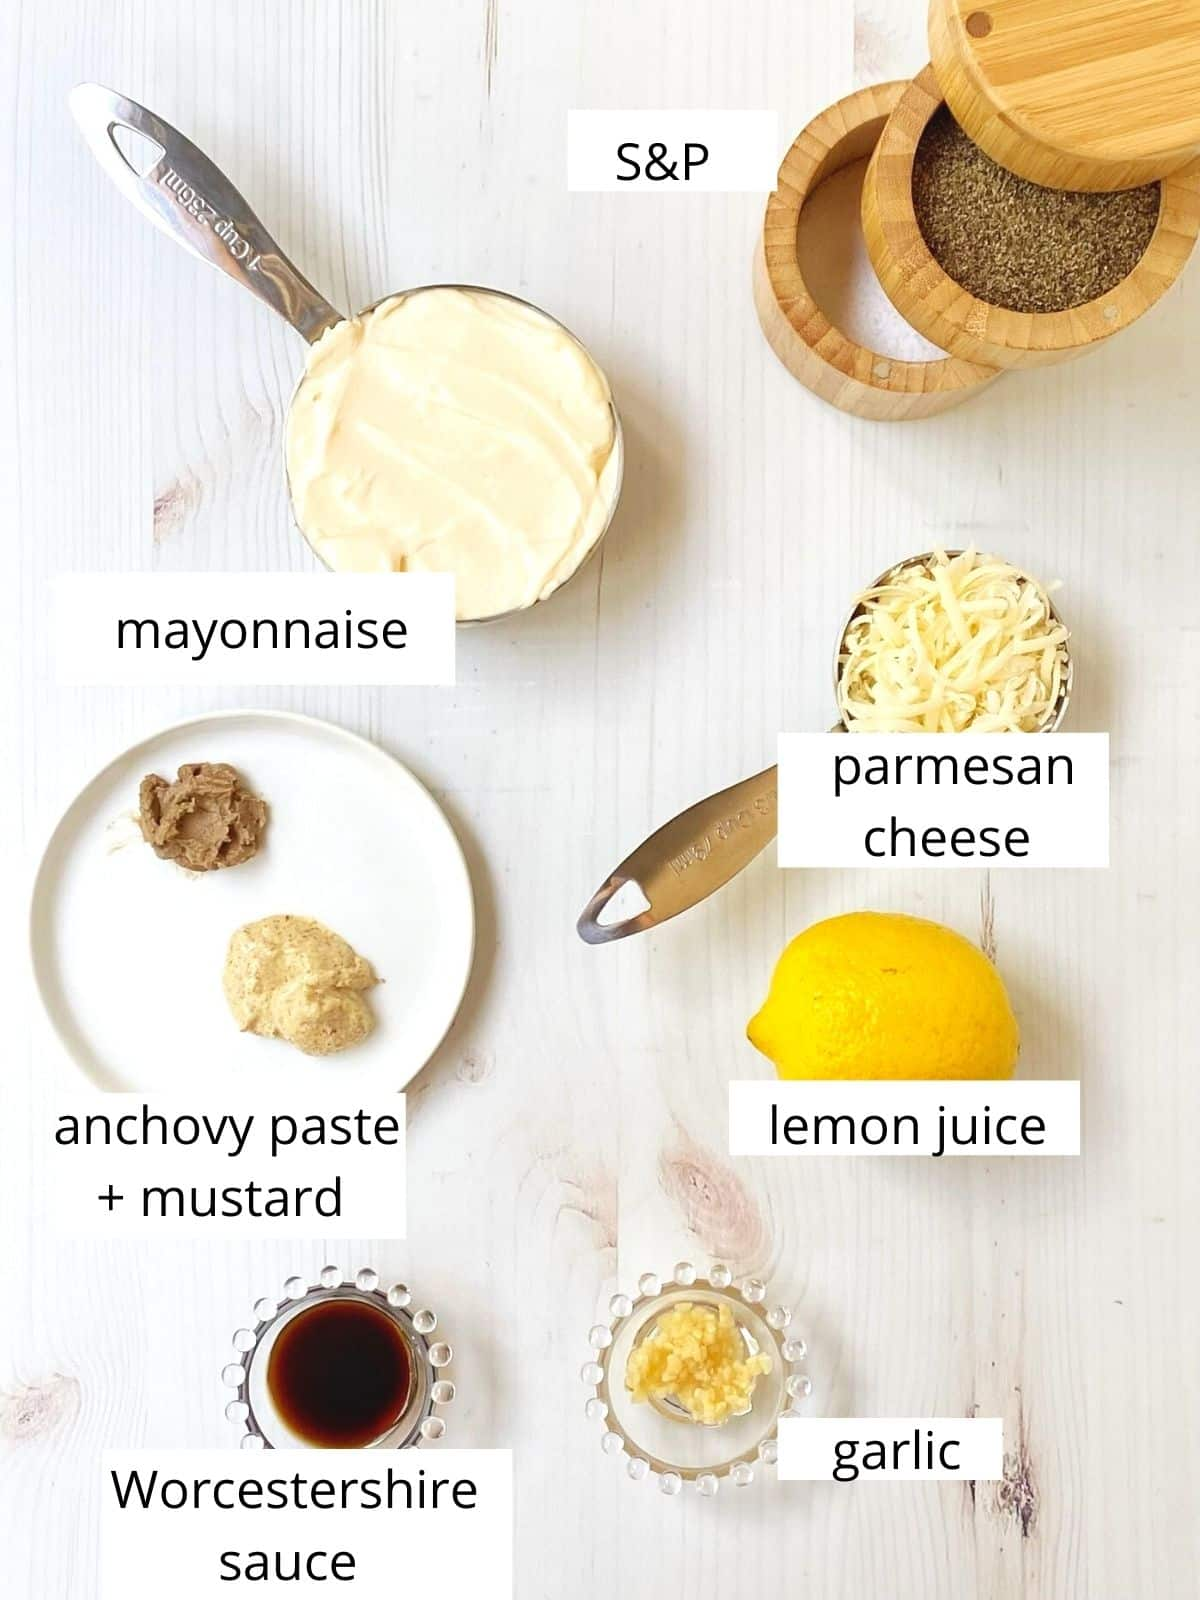 array of ingredients - mayo, Parmesan cheese, lemon juice, garlic, Worcestershire sauce, anchovy paste, mustard, salt and pepper